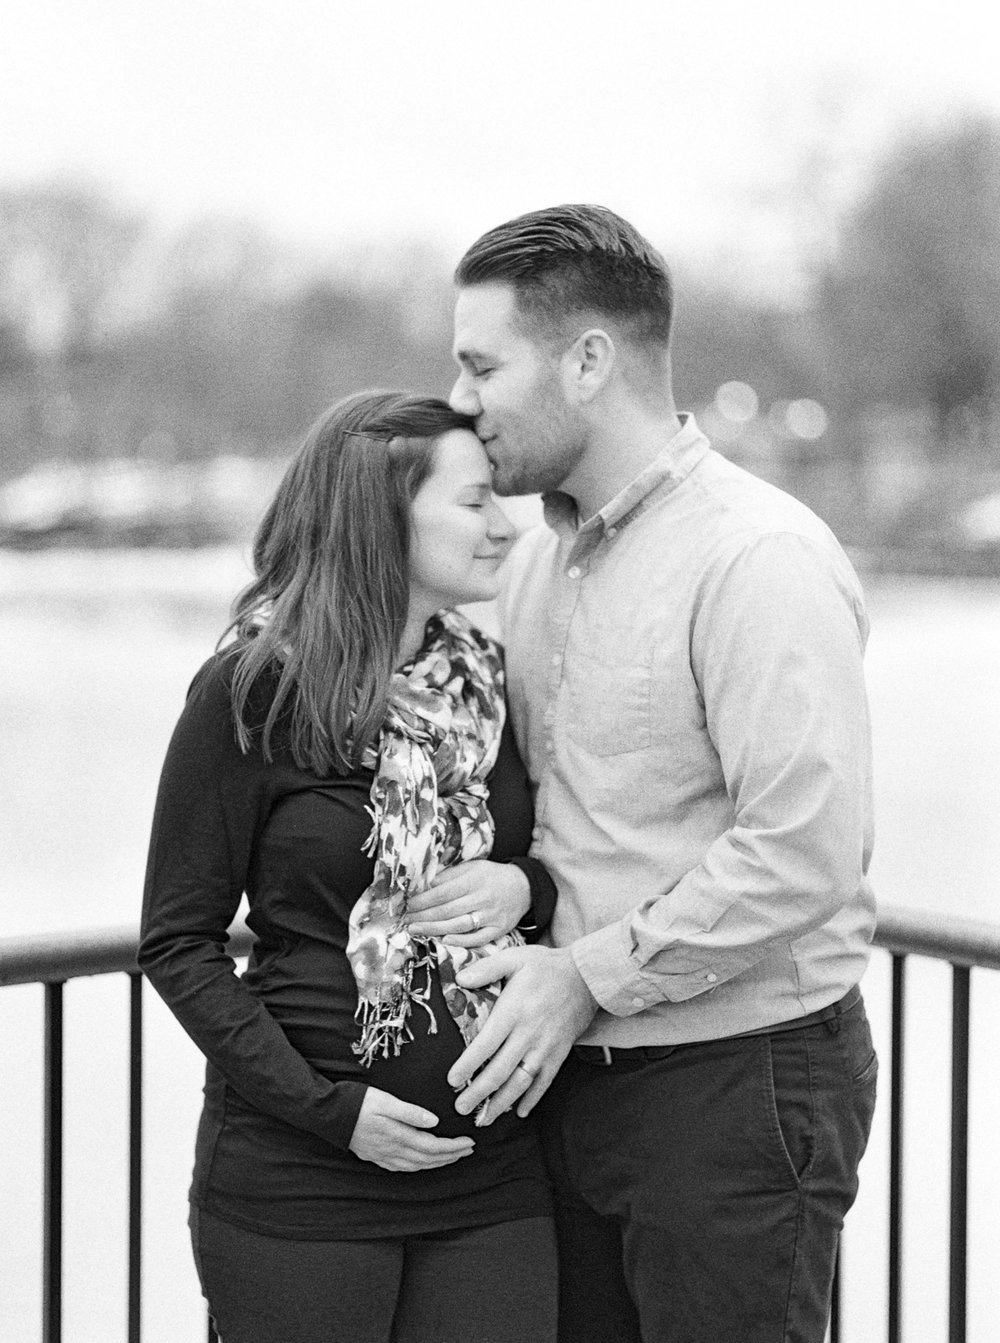 Coe Lake Maternity Photos by Cleveland Wedding Photographer Matt Erickson Photography